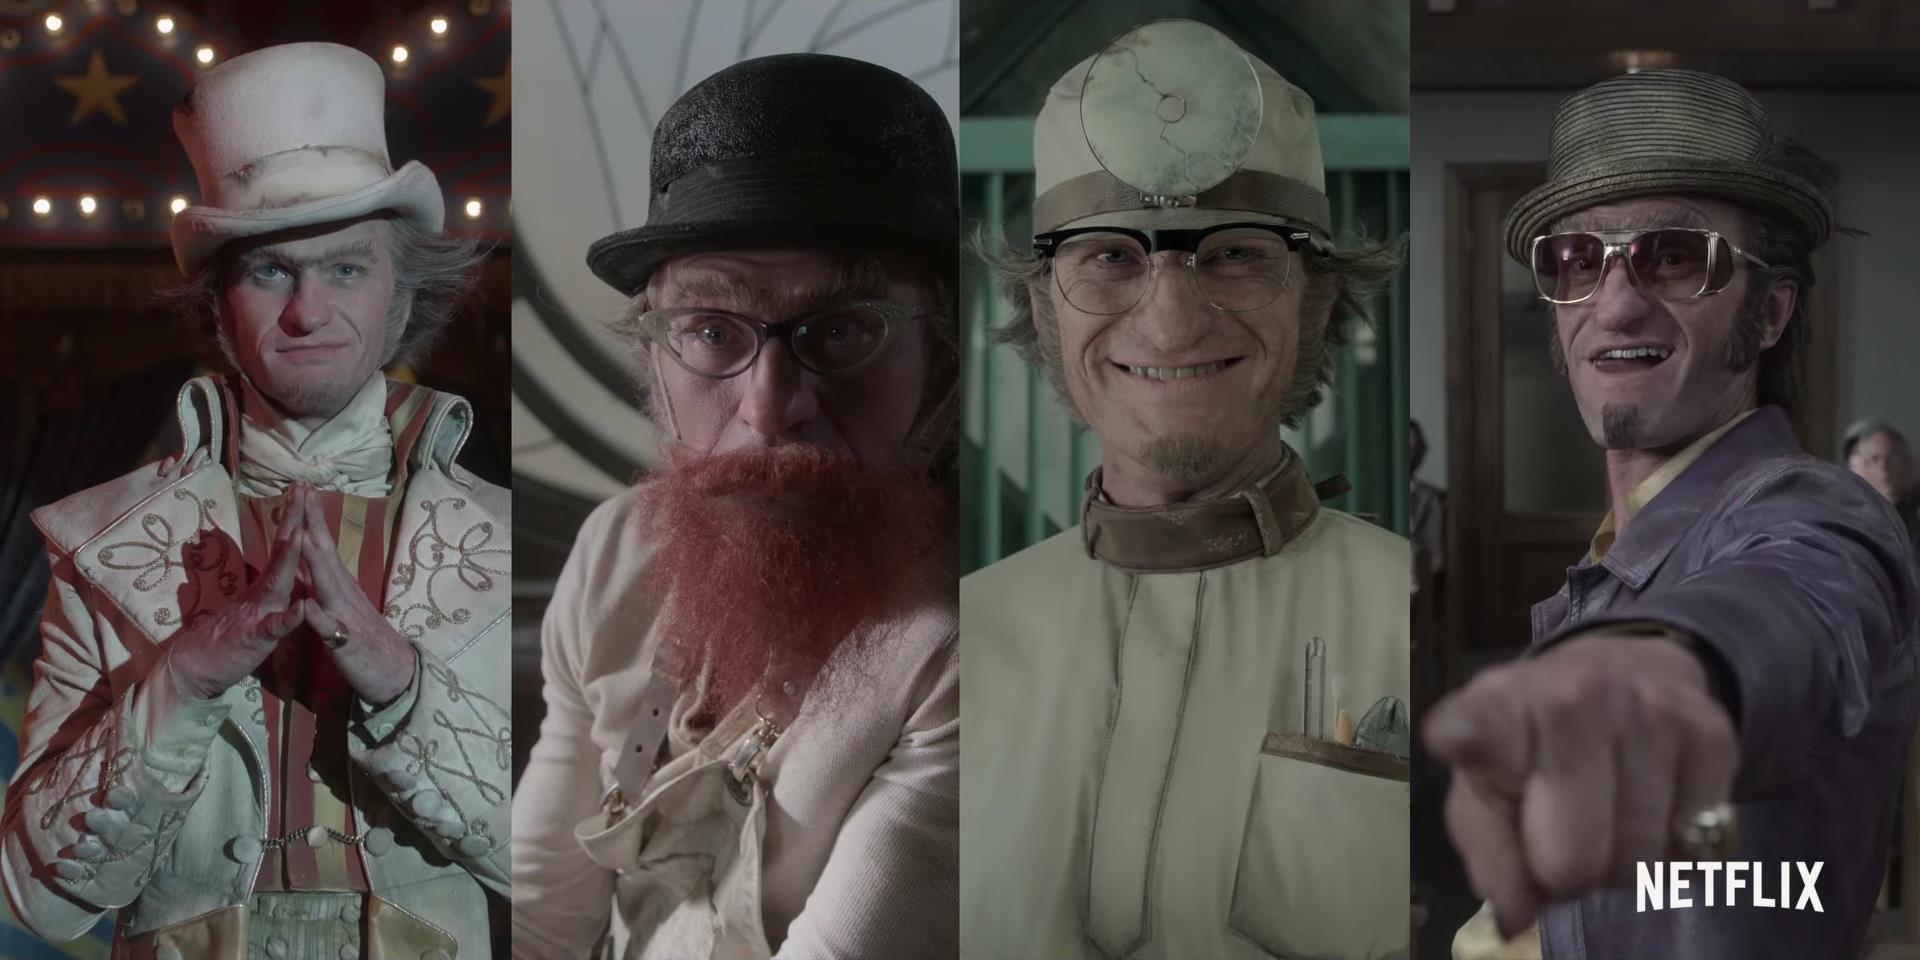 'A Series of Unfortunate Events' Season 2 Trailer Is a School Nightmare